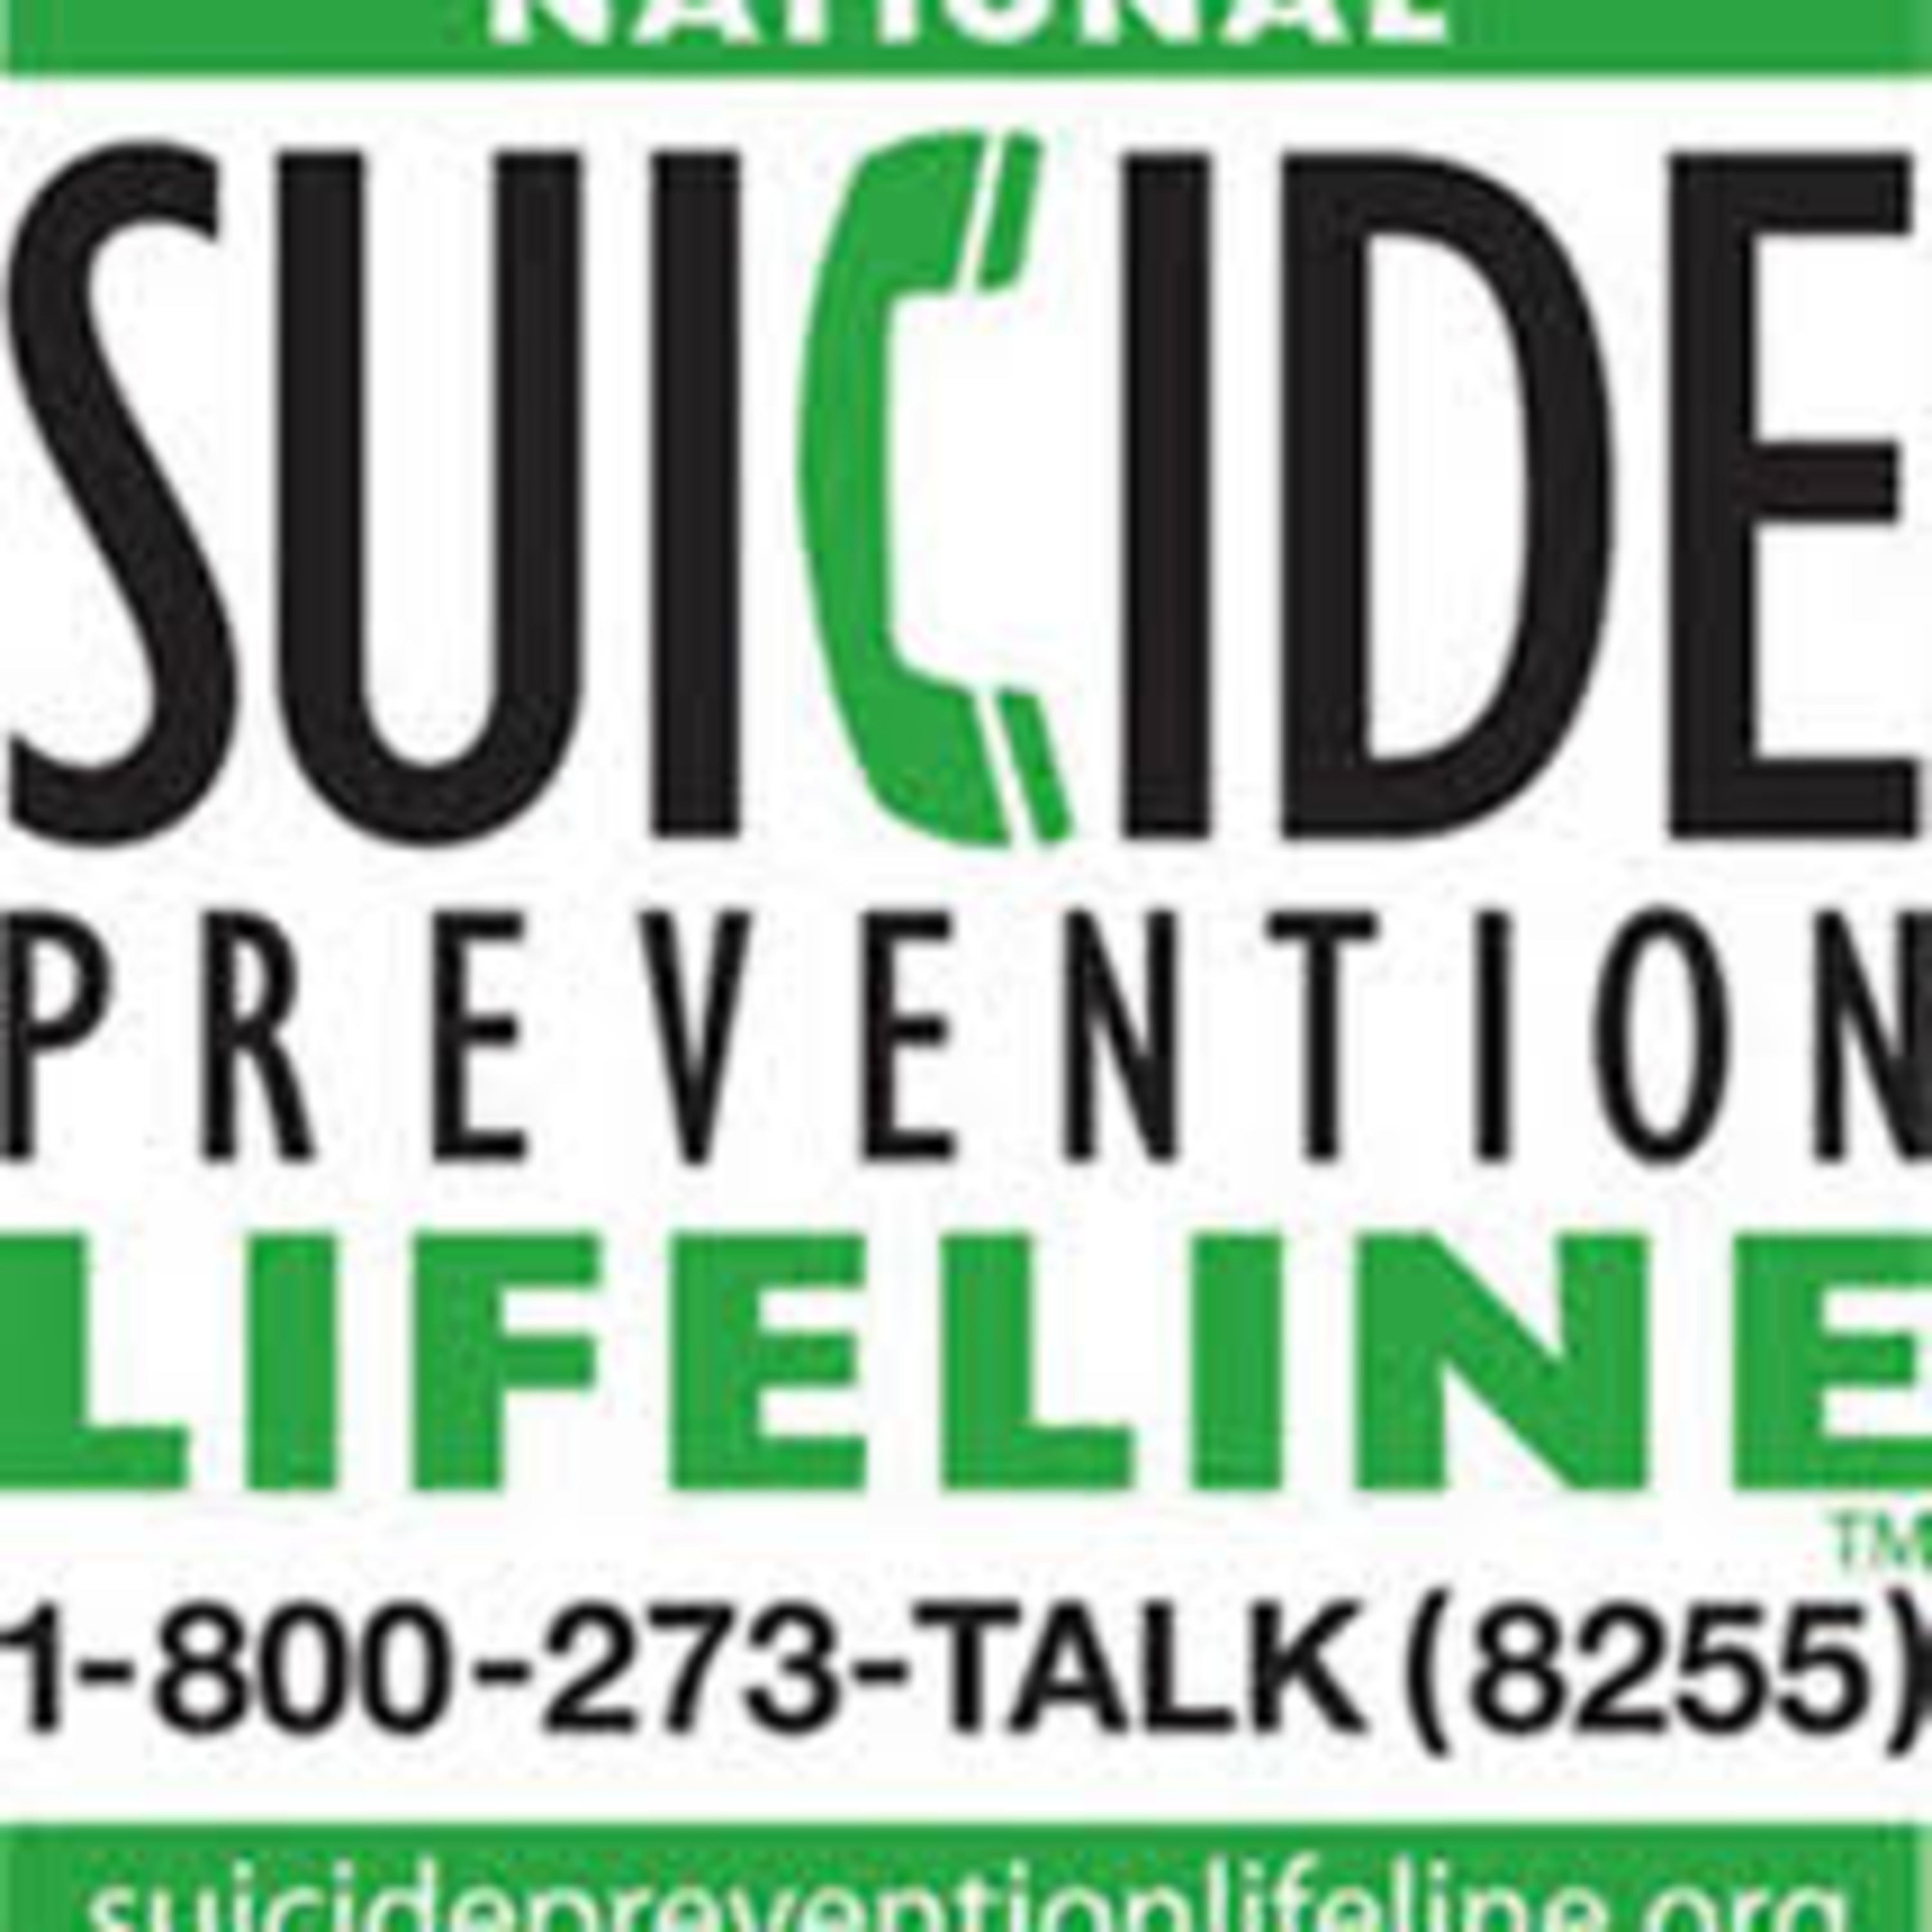 Episode 158 The pain inside, Suicide Awareness & Prevention